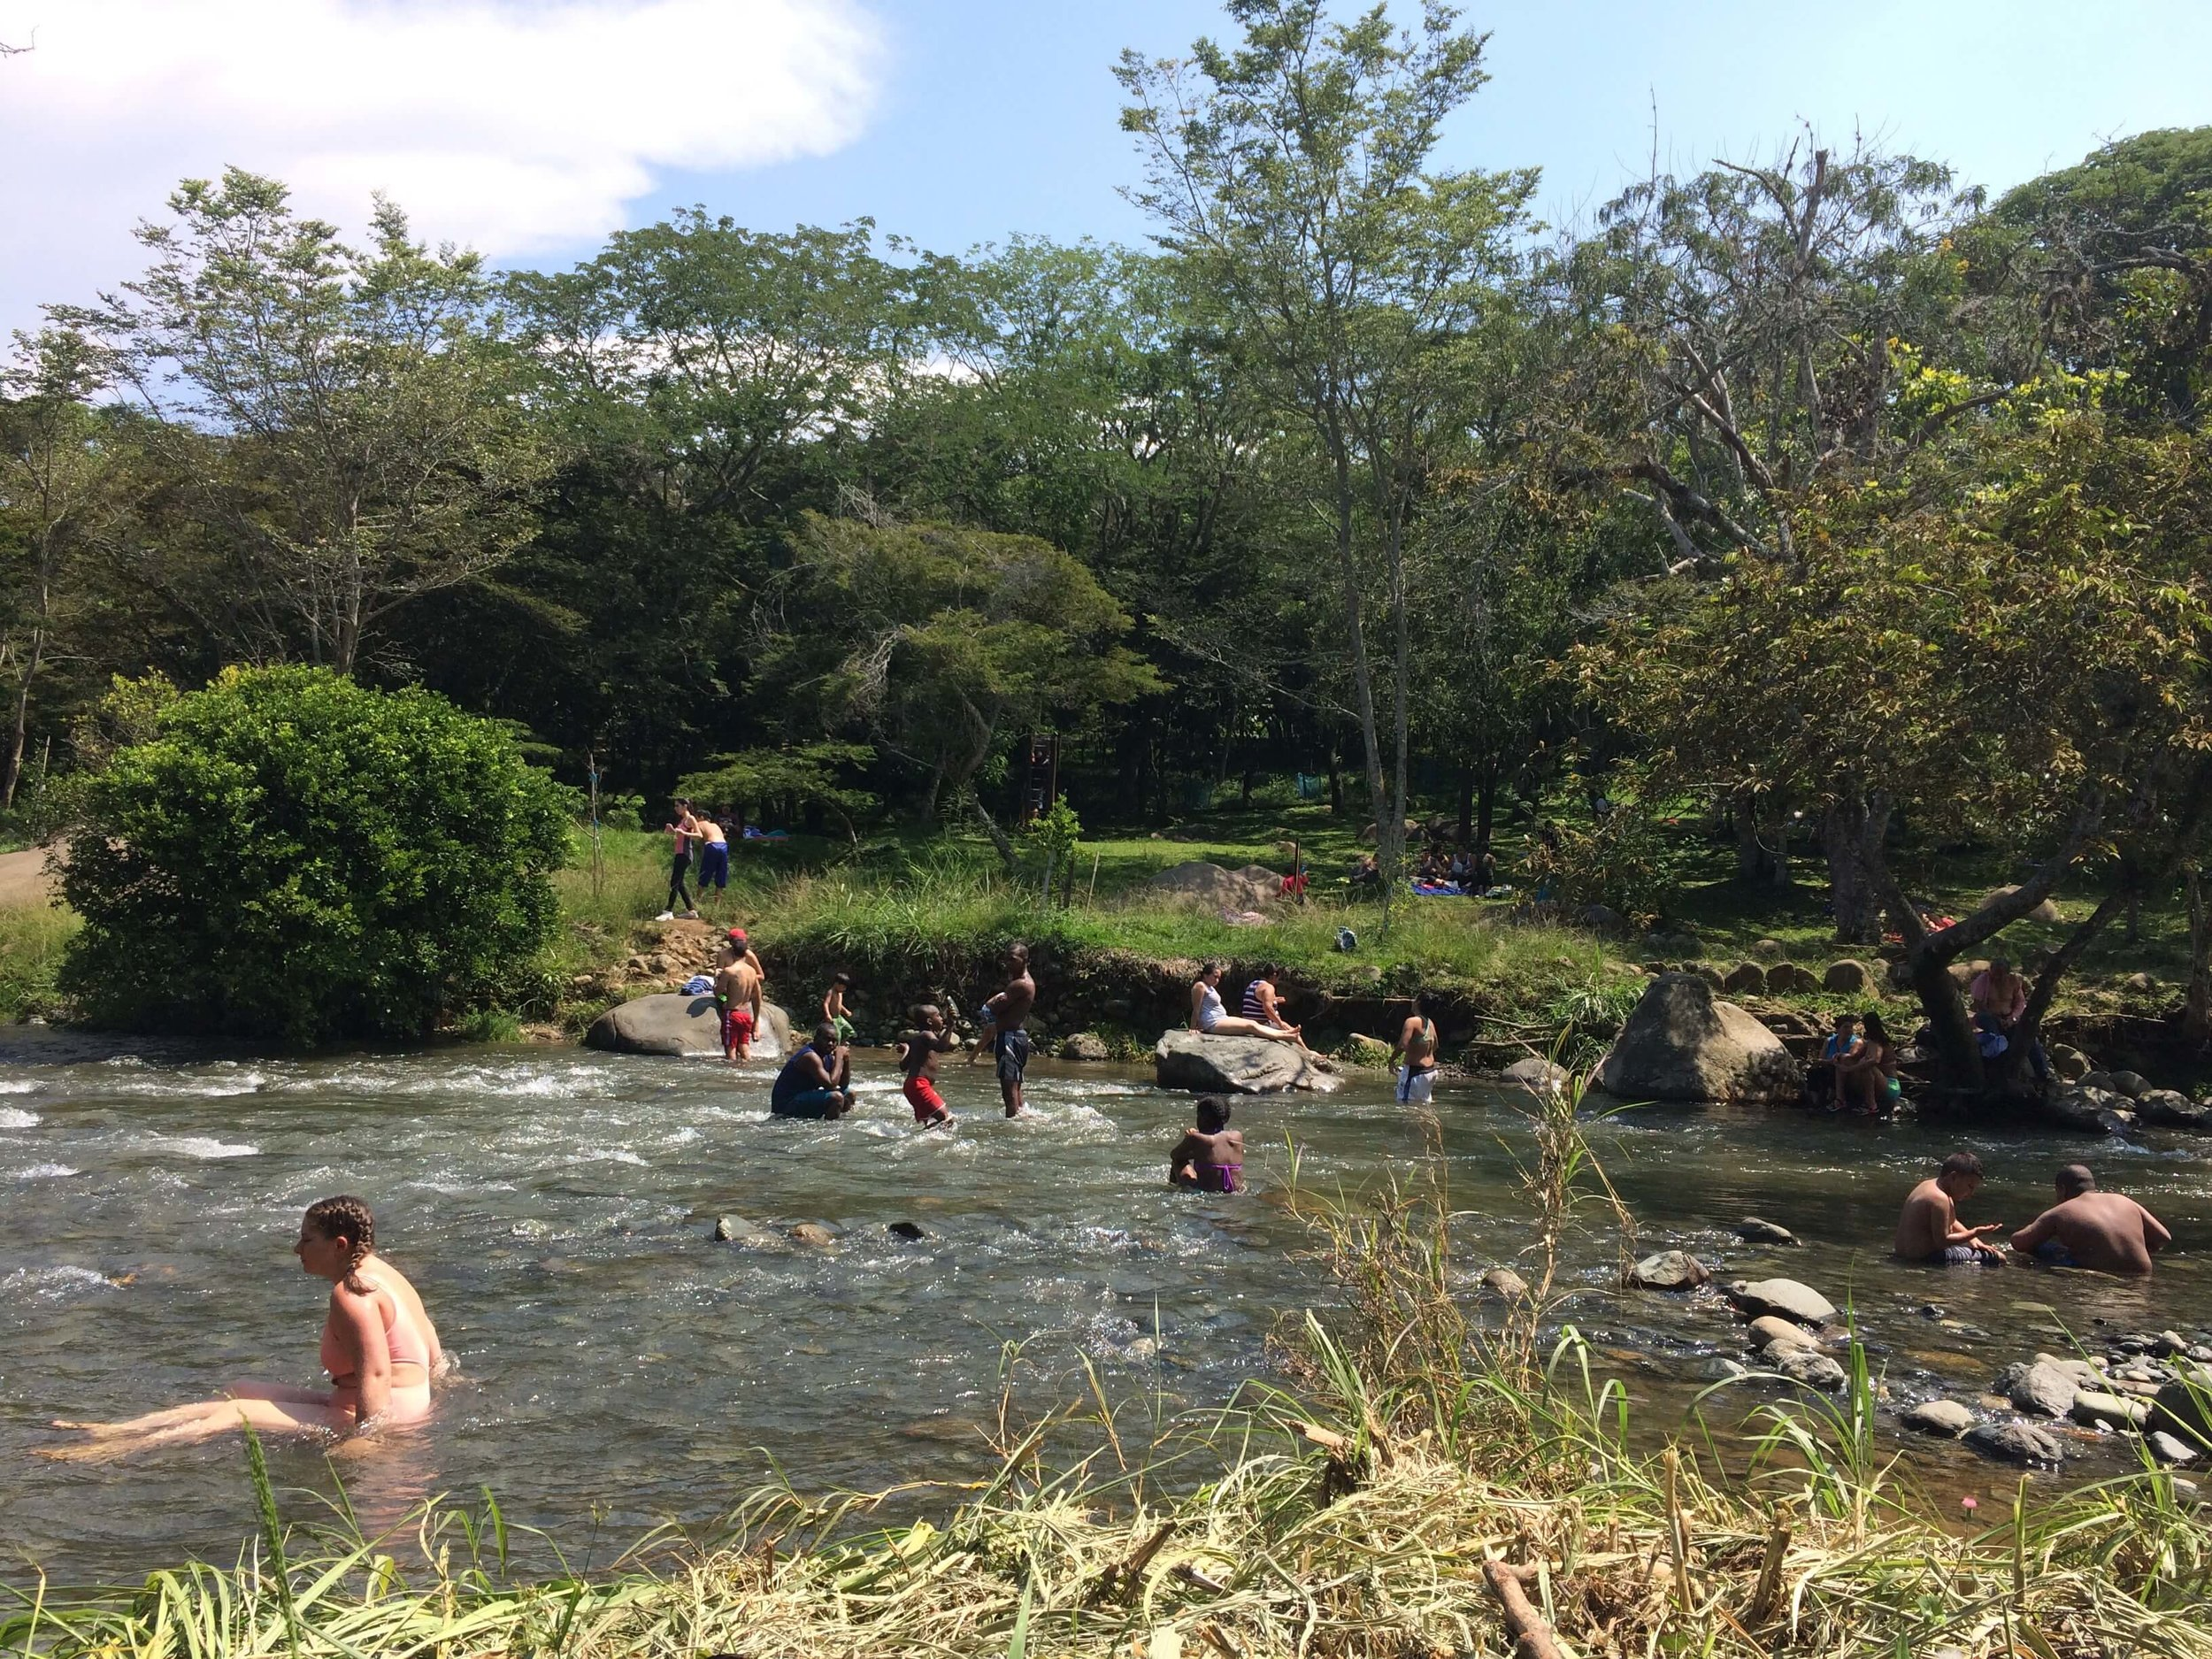 Enjoying a sunny day in the shallows of Rio Pance at the Ecoparque.